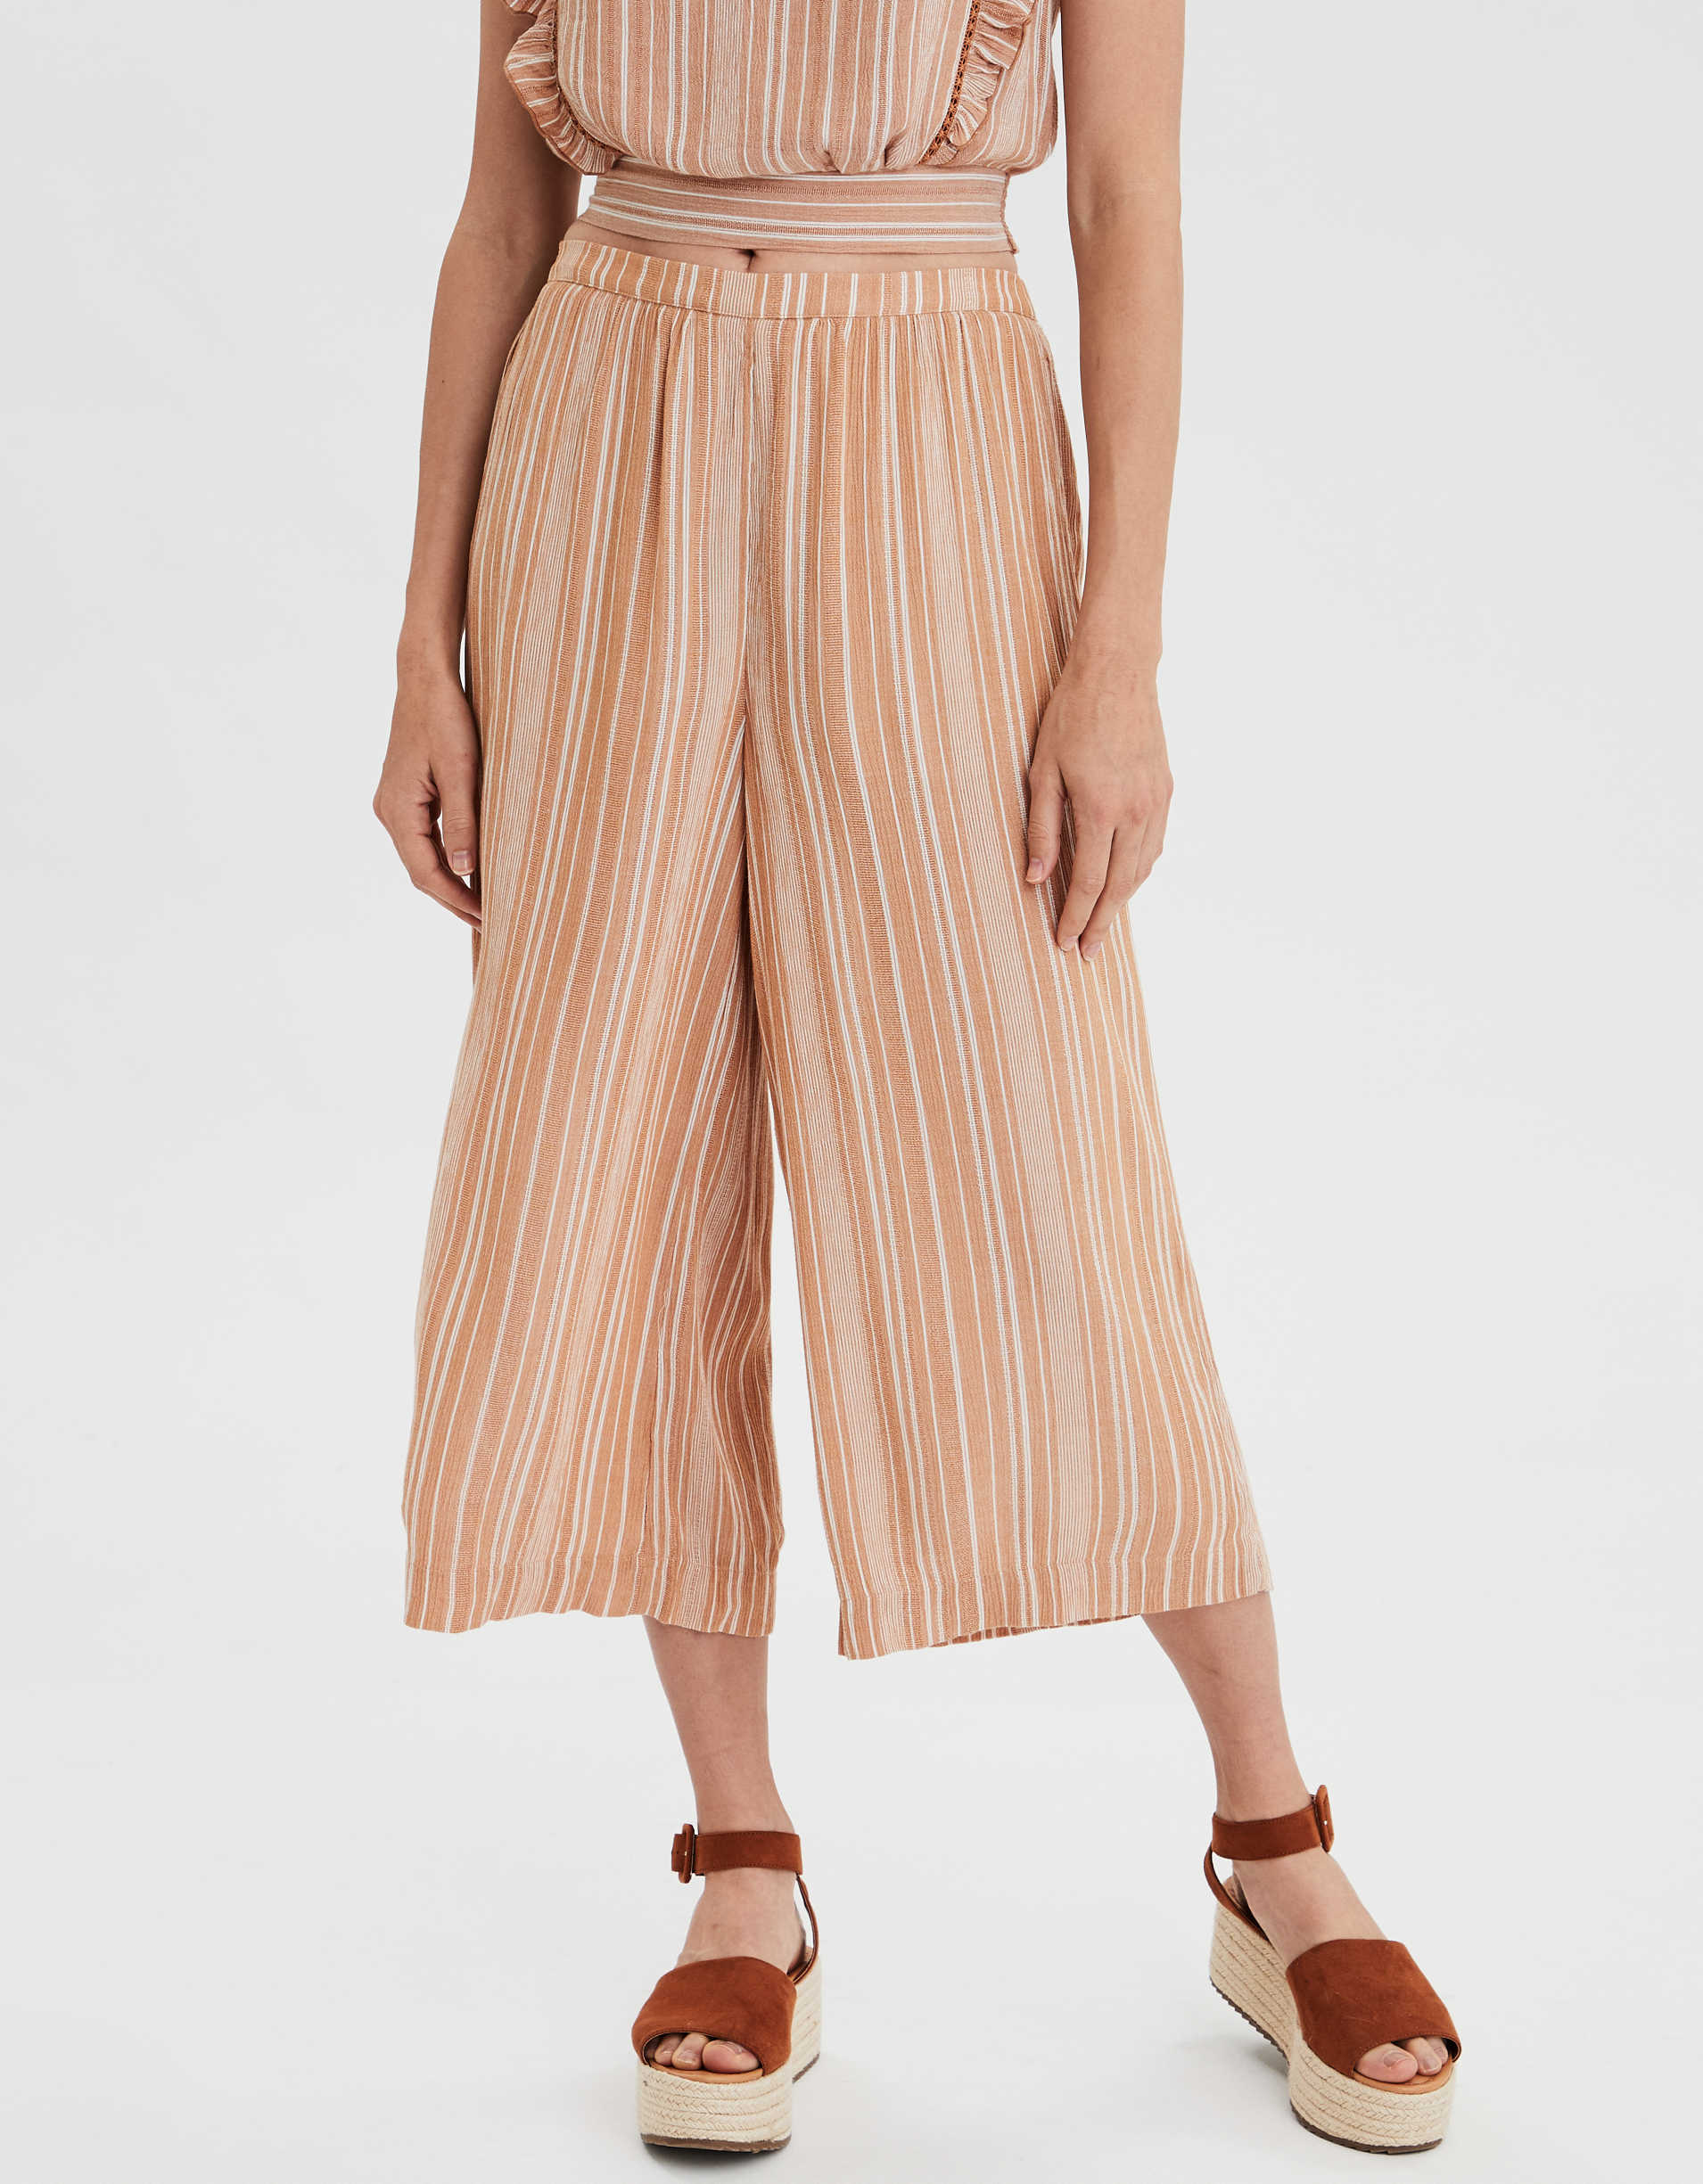 AE High-Waisted Striped Culottes